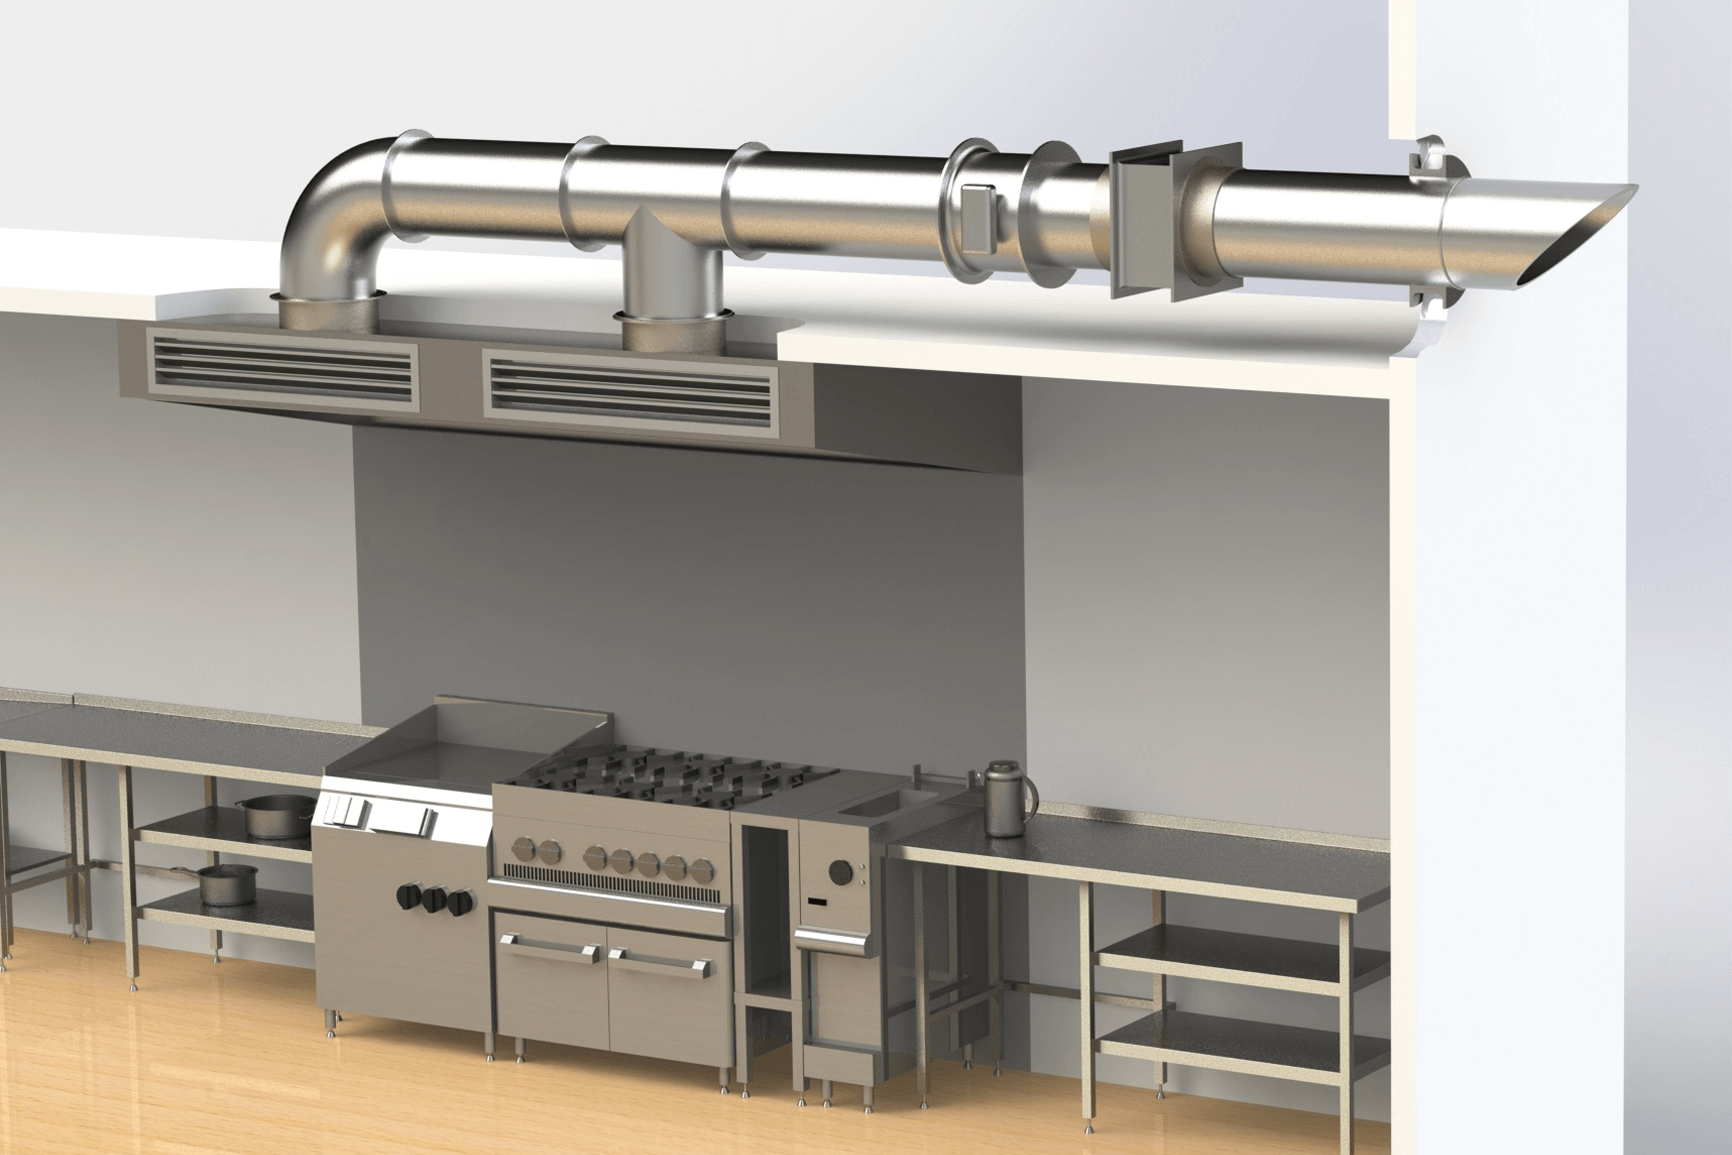 Exhaust Hoods, Grease Extraction Devices, and Make-Up Air for Fire ...